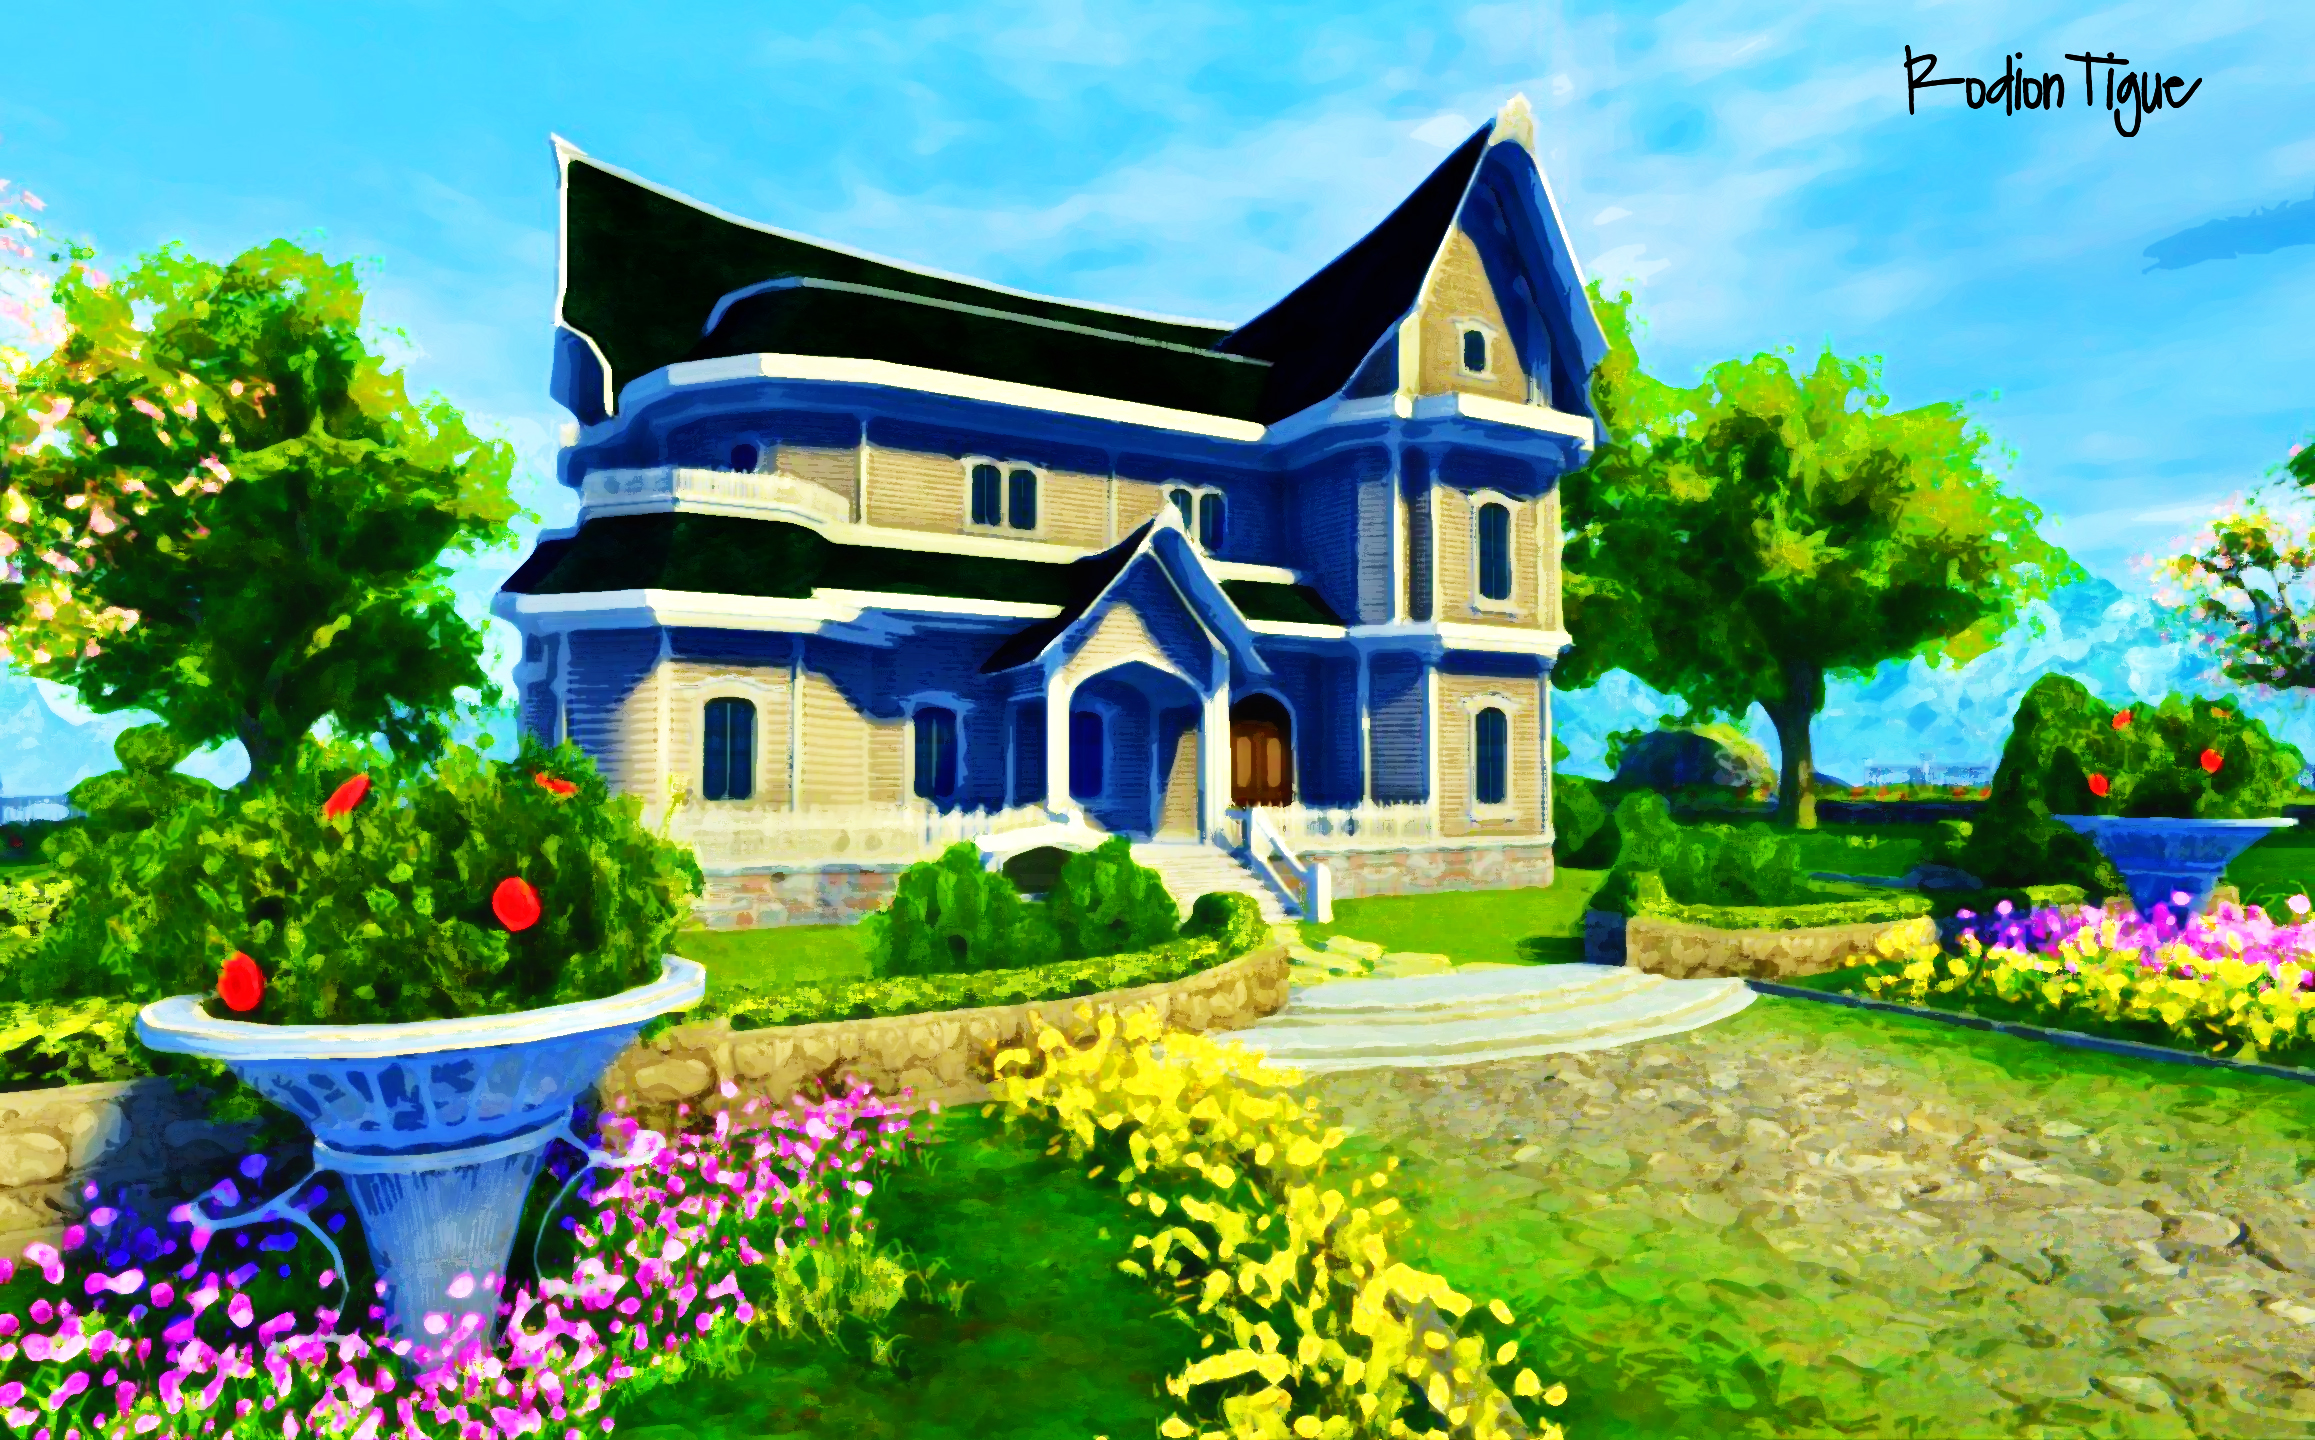 Dream Home Wallpaper By Rodiontigue On Deviantart